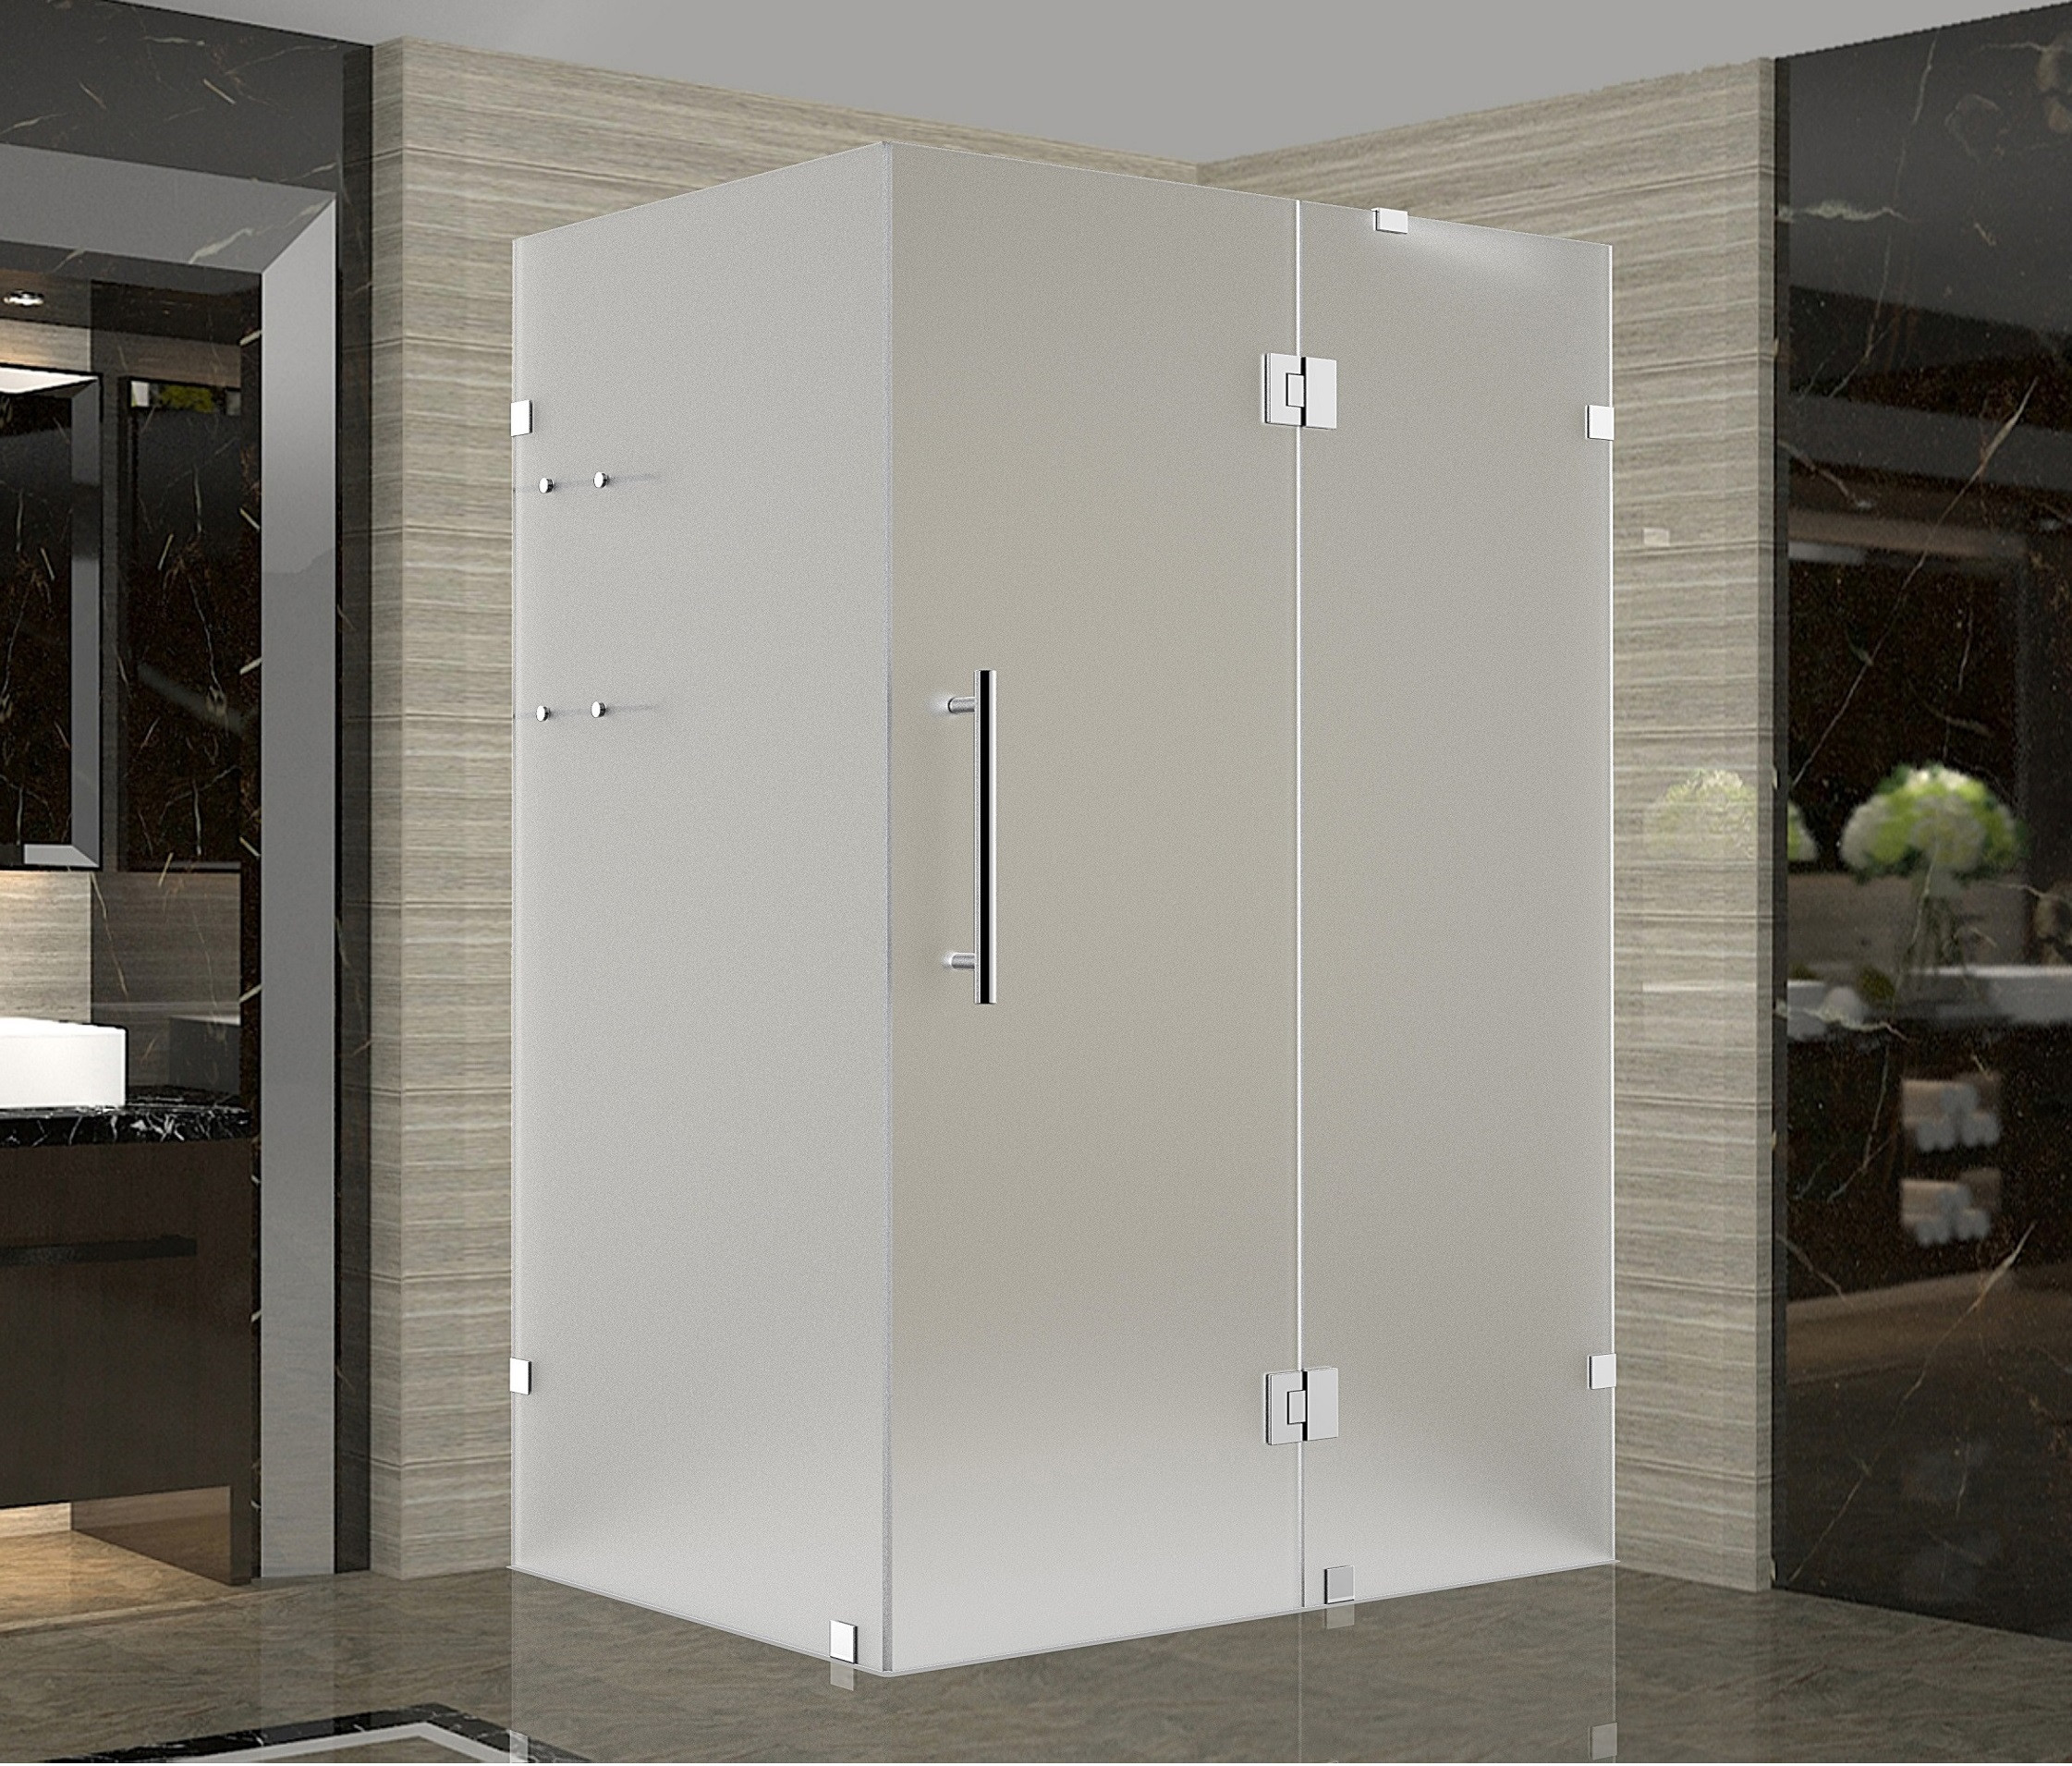 Aston Global SEN992F-CH-4030-10 Chrome Completely Frameless Frosted Shower Enclosure with Shelves